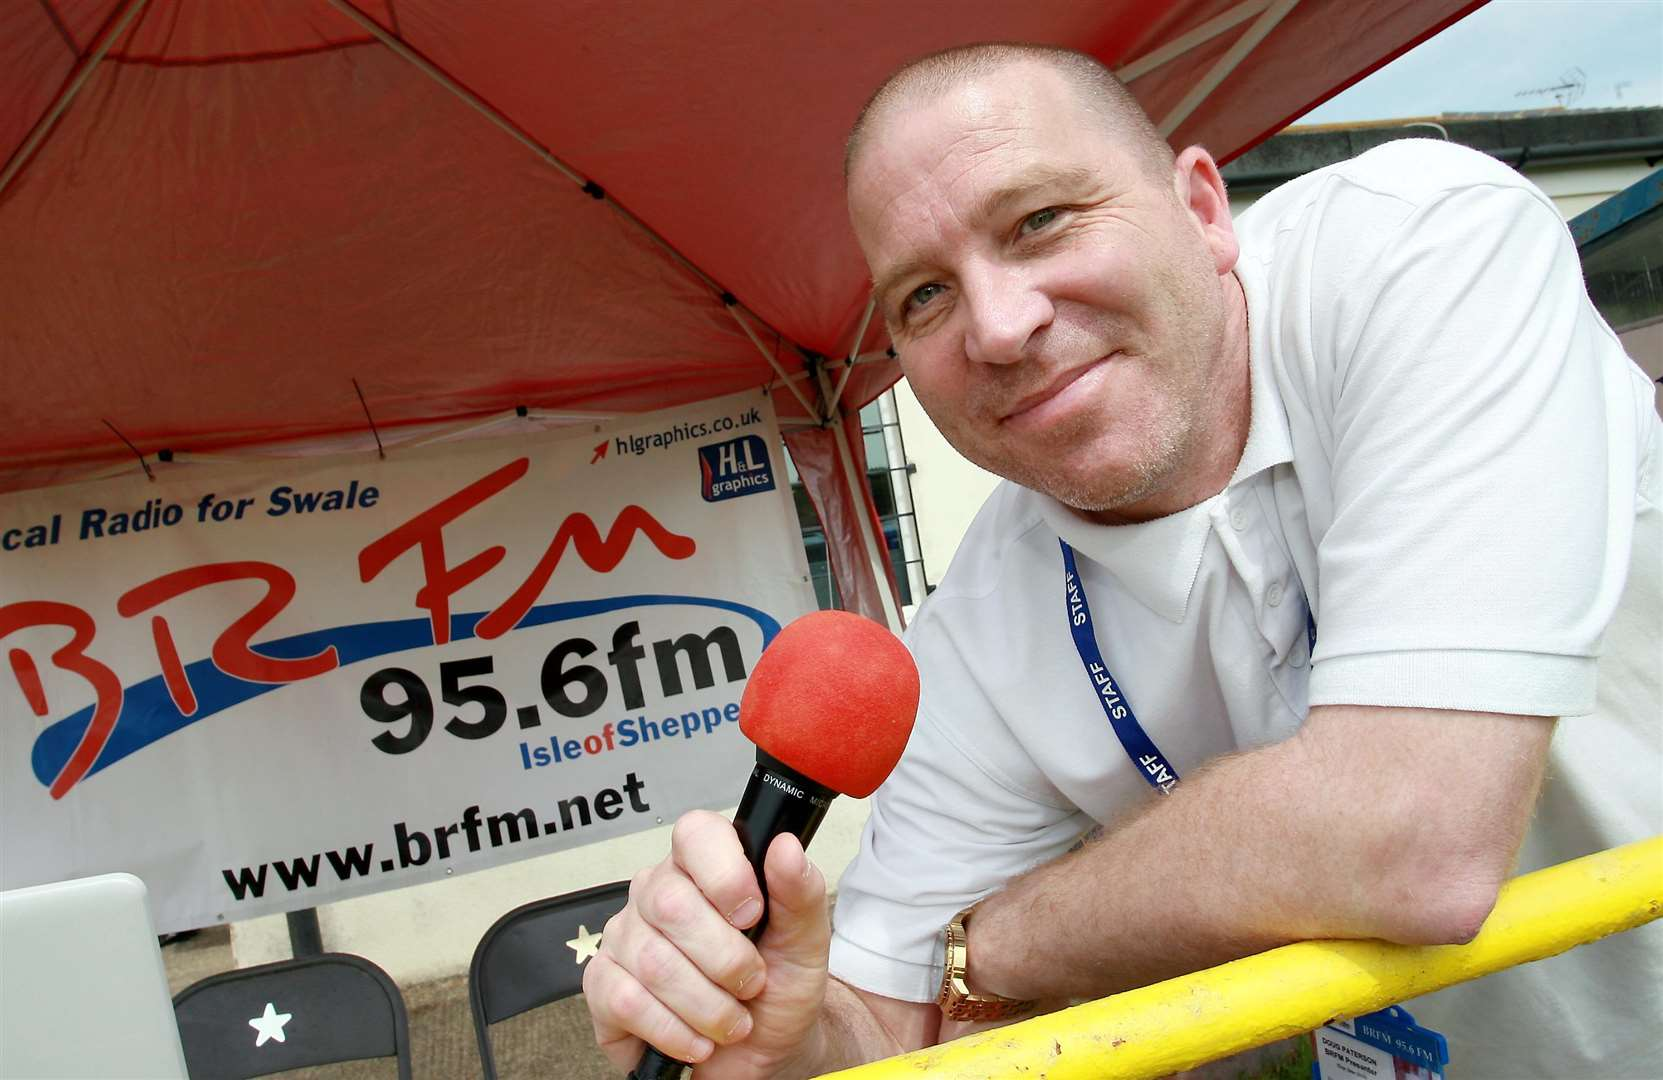 DJ Doug Patterson from BRFM. Picture: Phil Lee